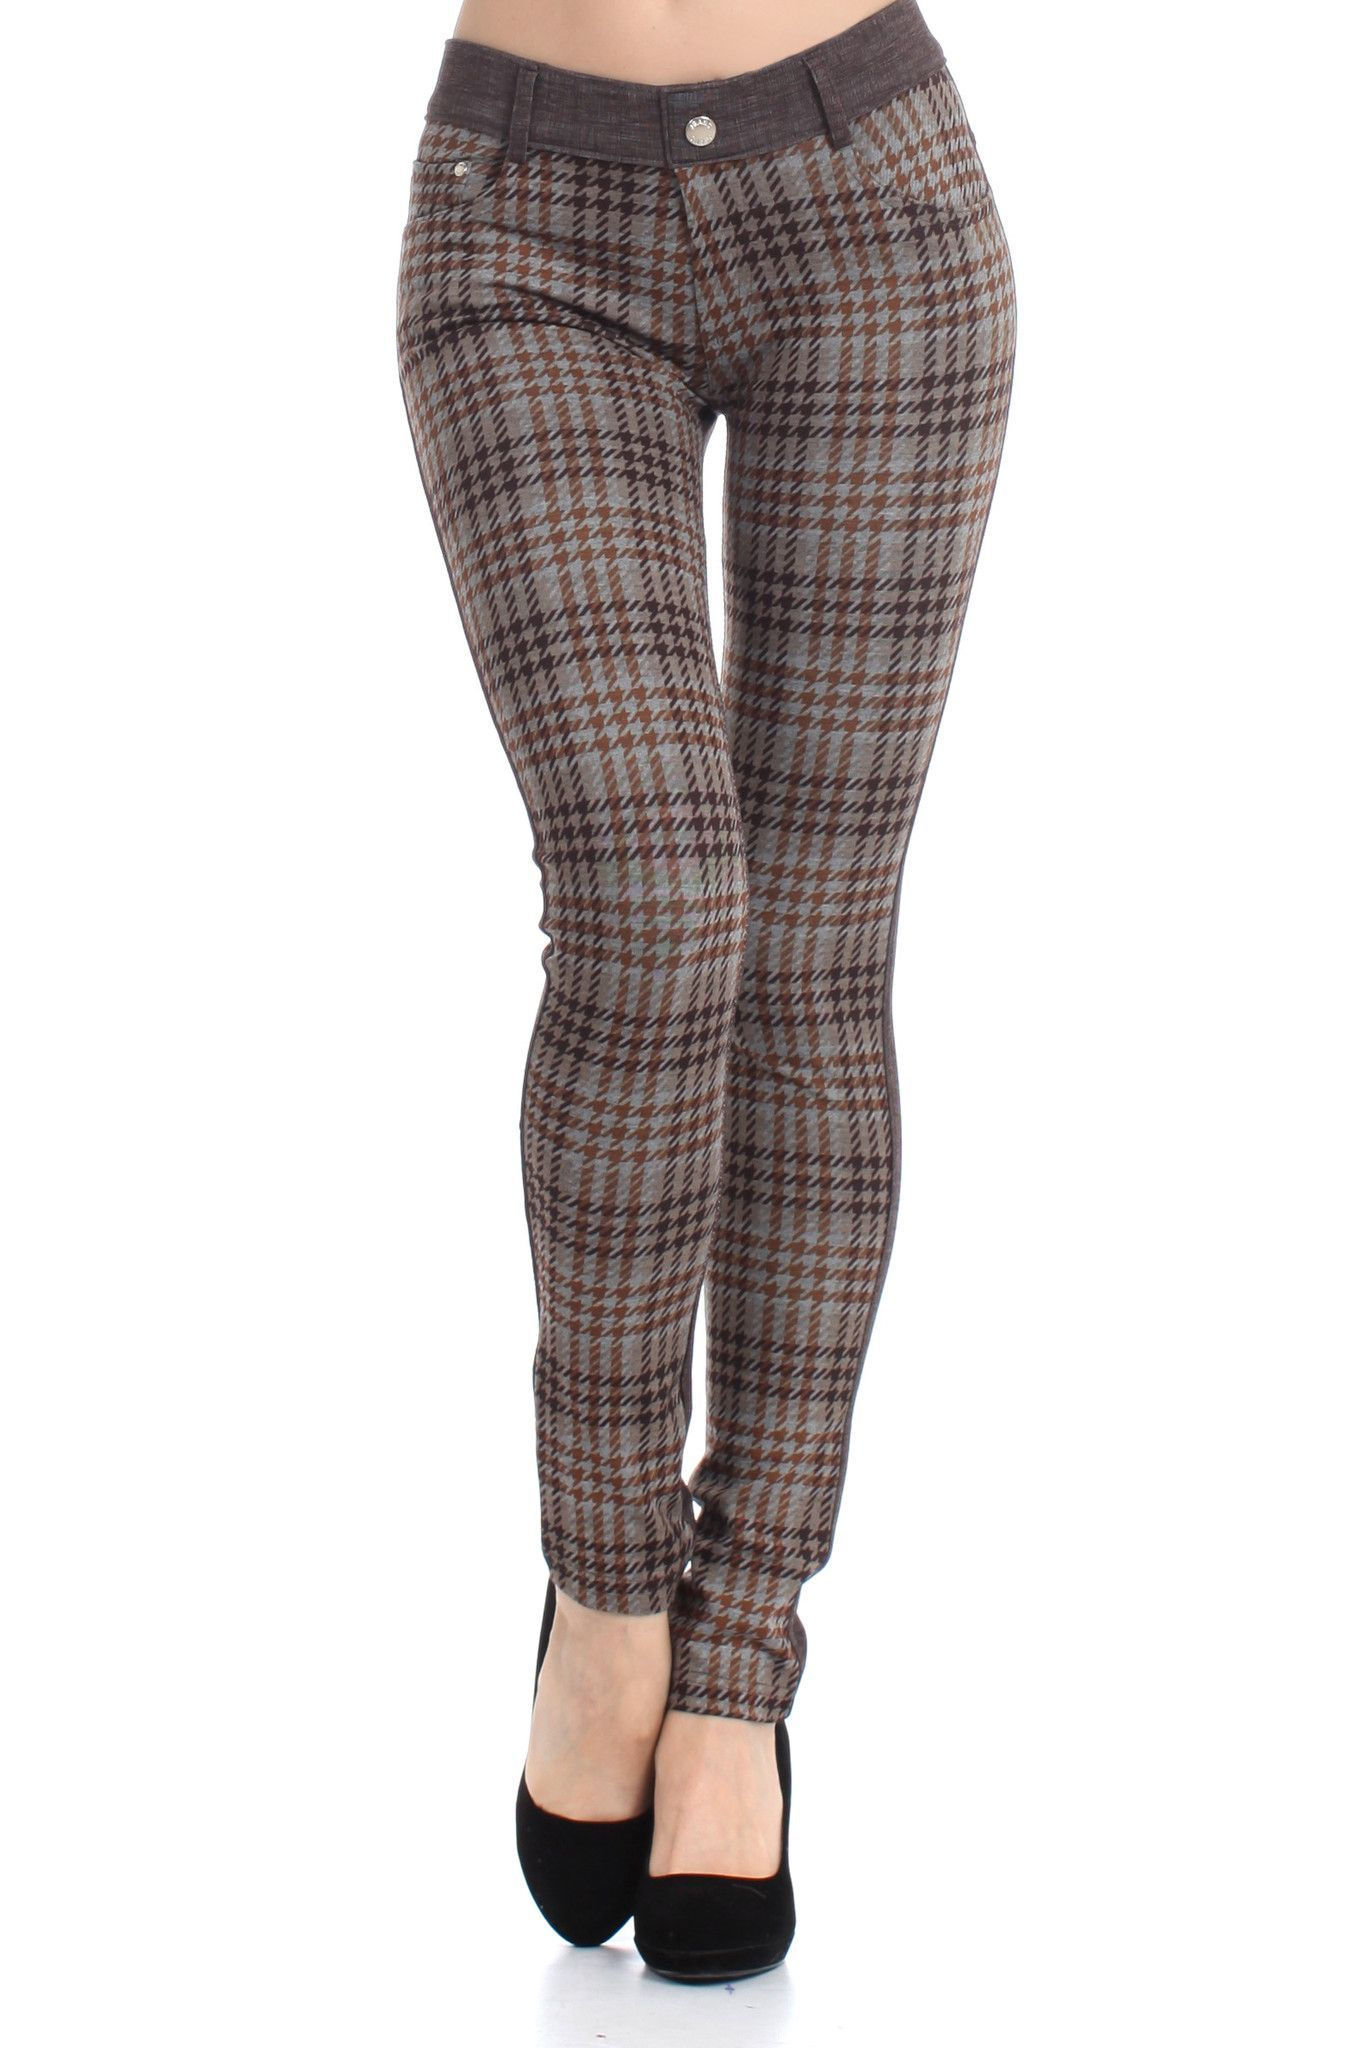 The Sharona Plaid Jegging is the wear-to - Please, Step Into Our Office. The Sharona Plaid Jegging Is The